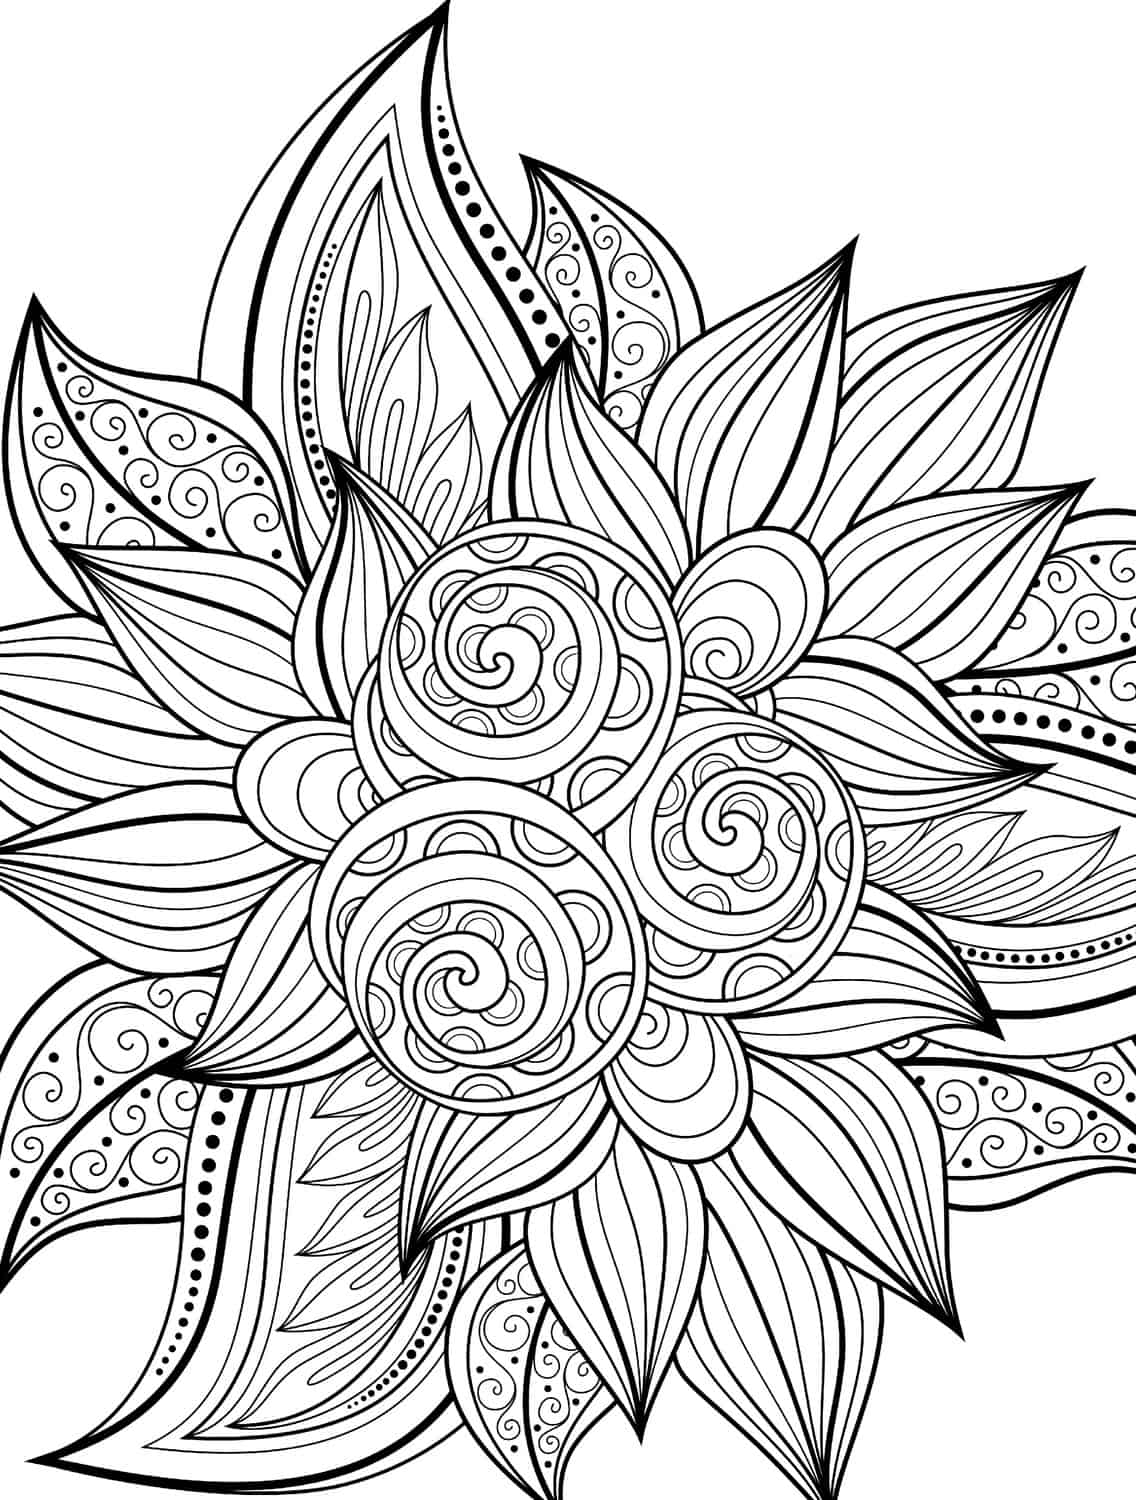 full size coloring pages 10 free printable holiday adult coloring pages full size coloring pages